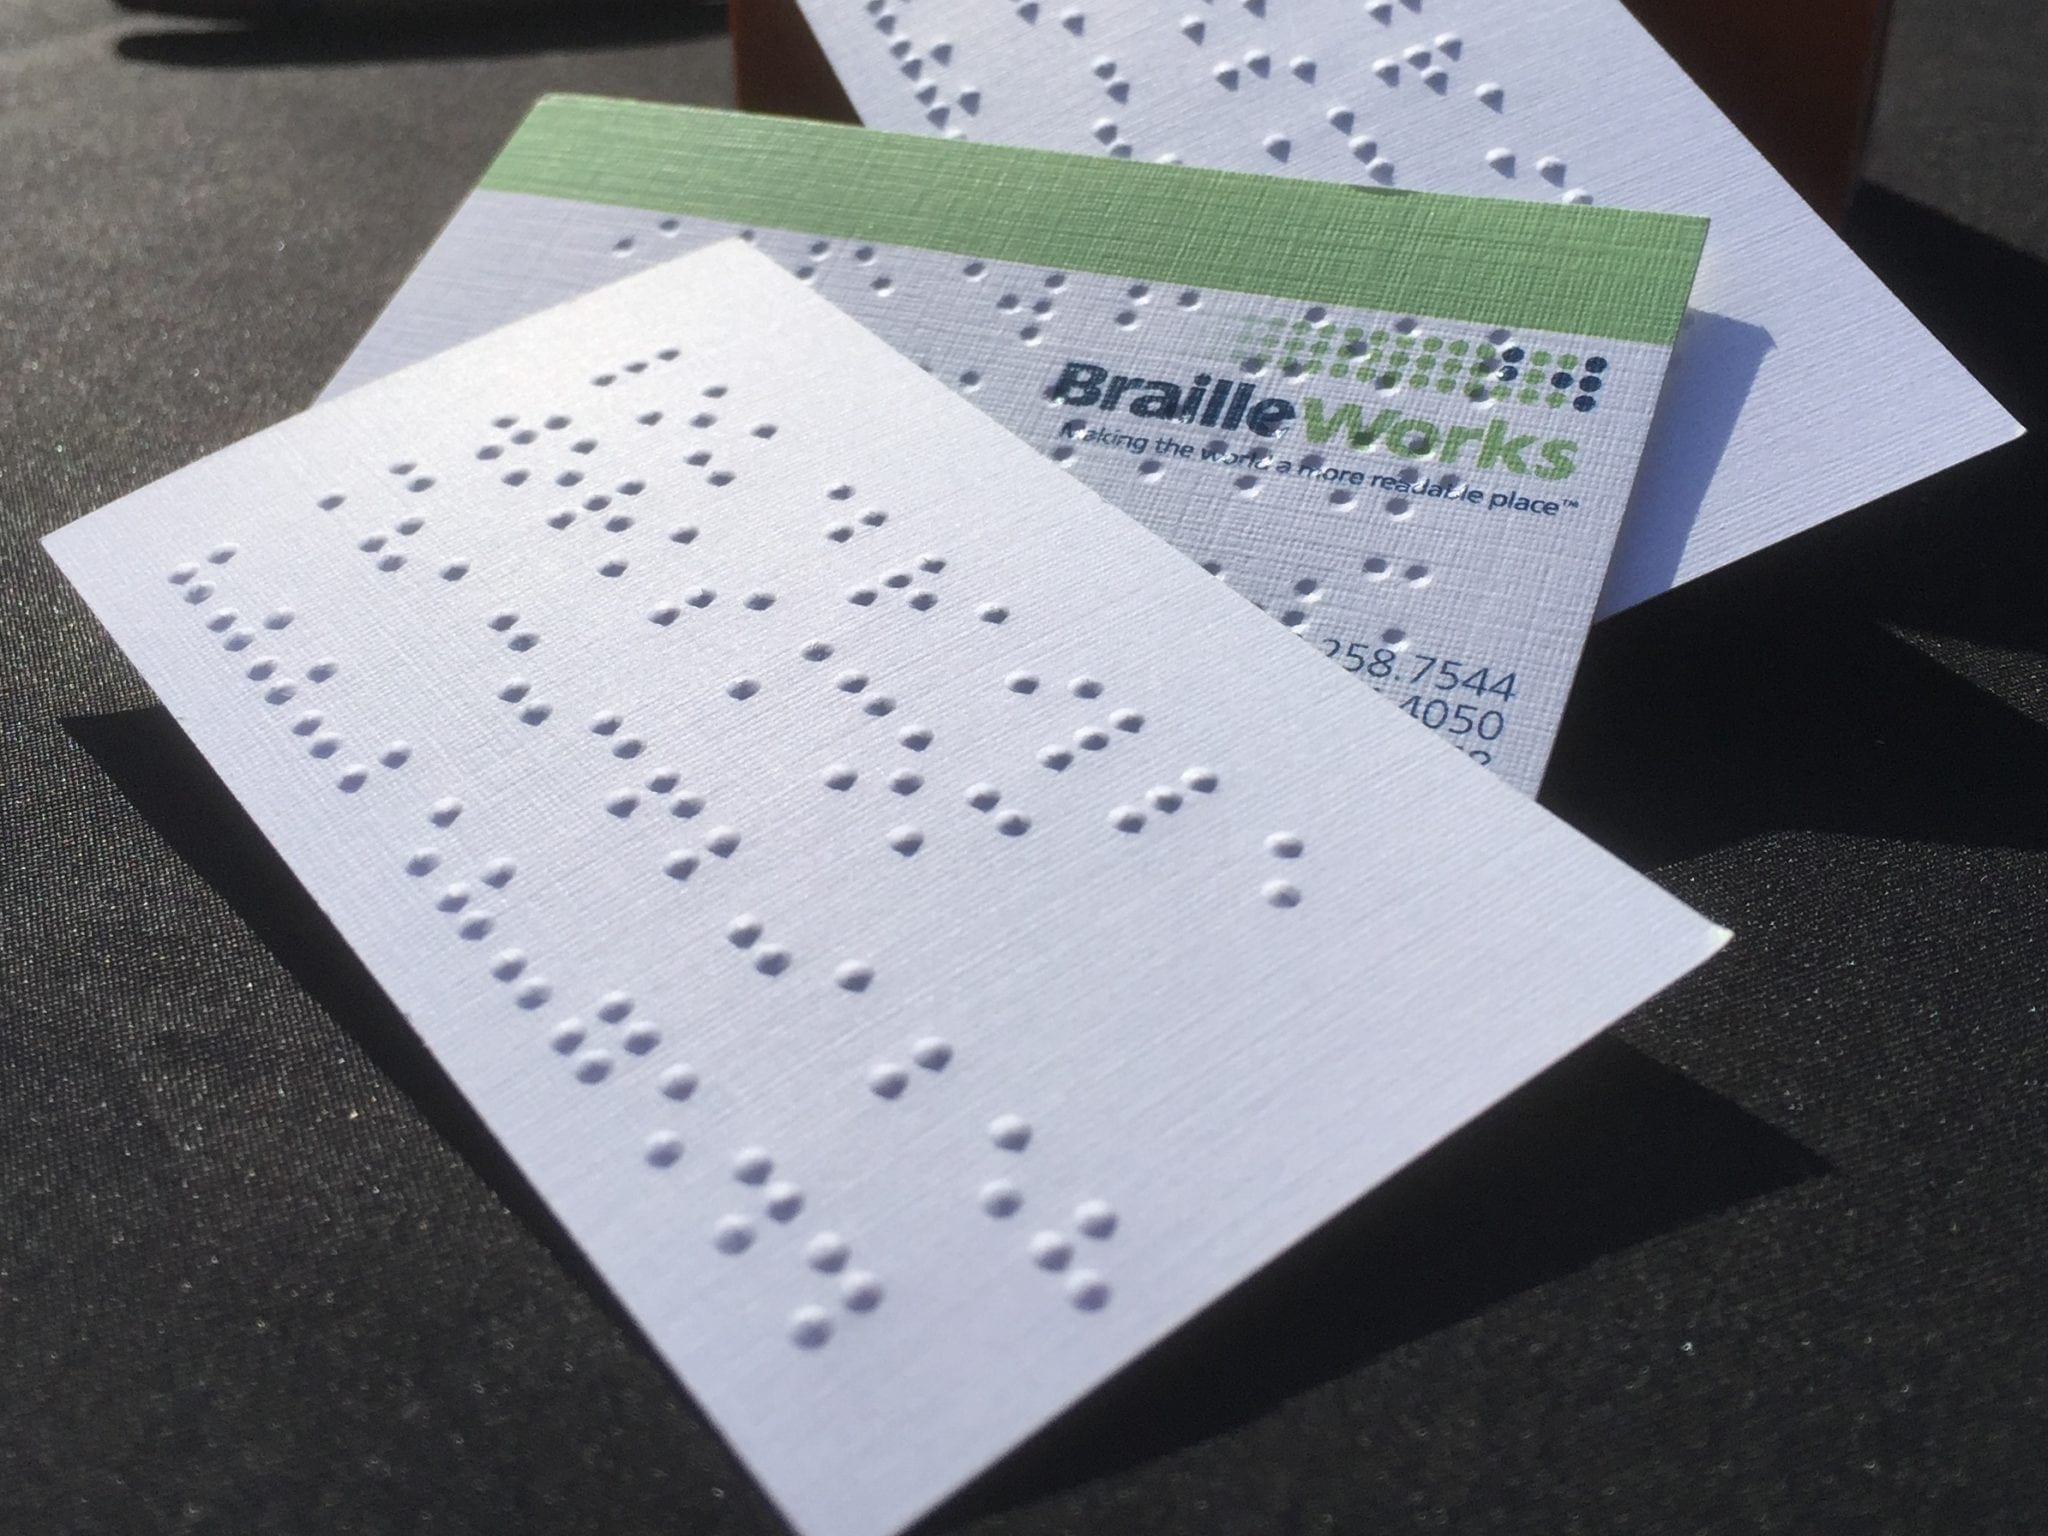 Braille Works Braille Business Cards